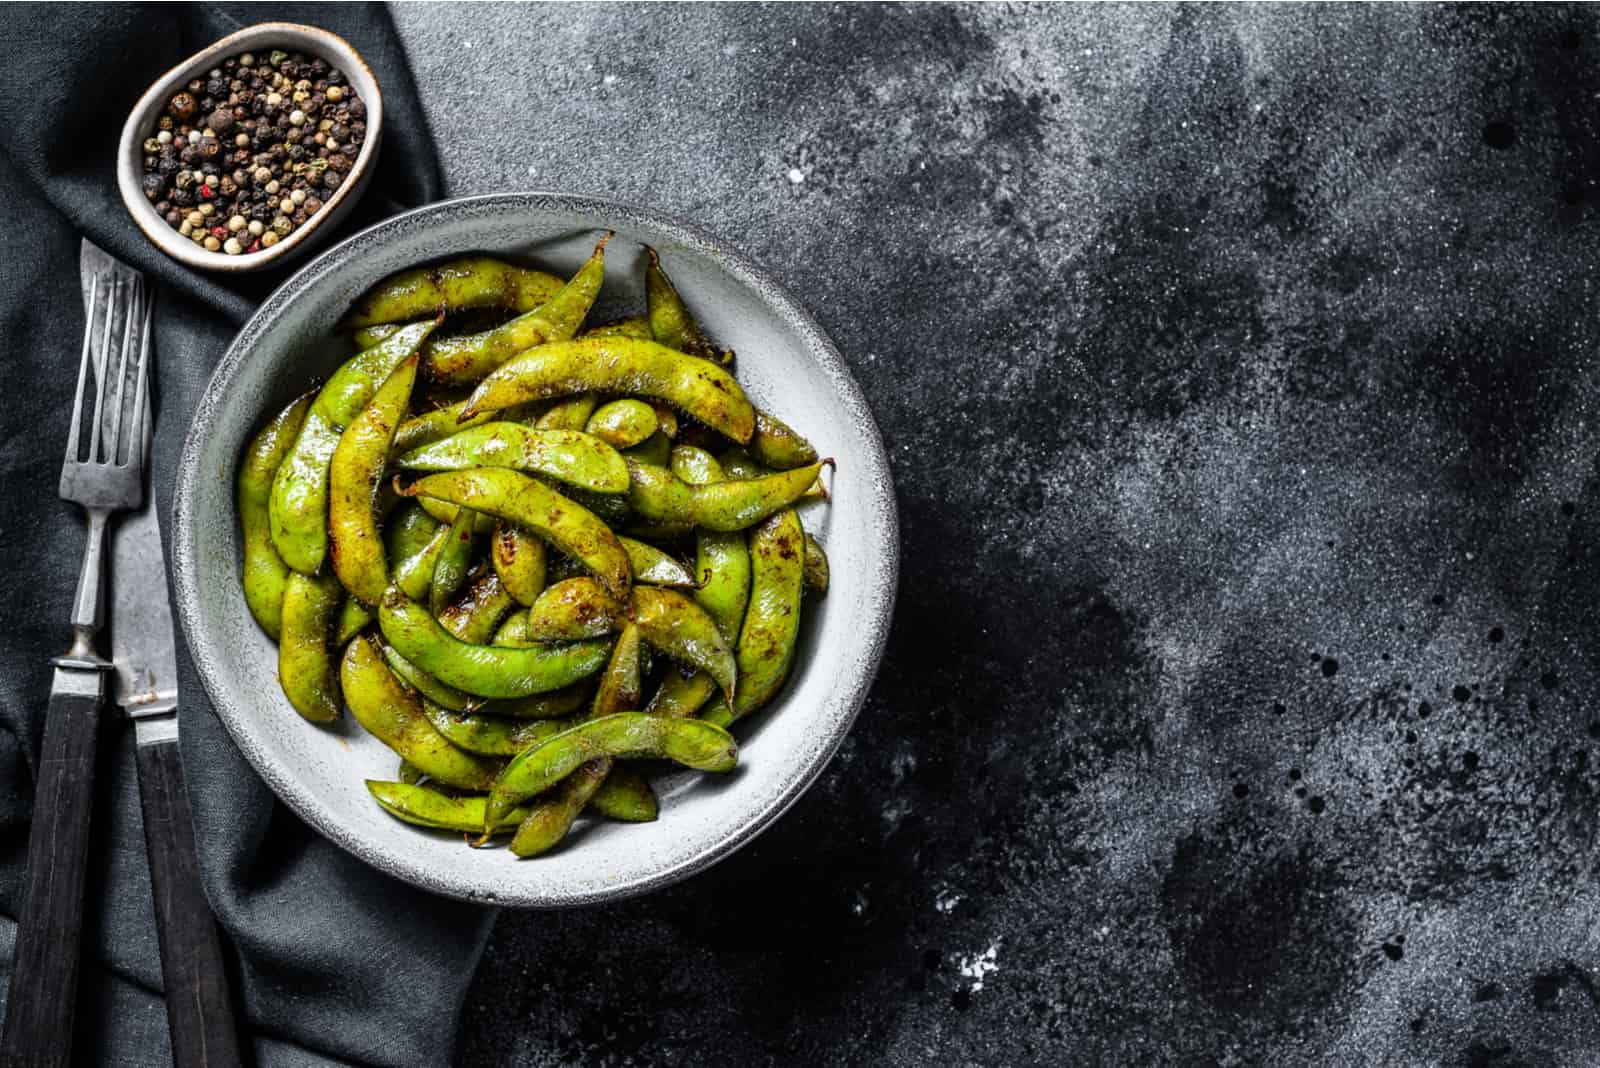 cooked edammame in a bowl